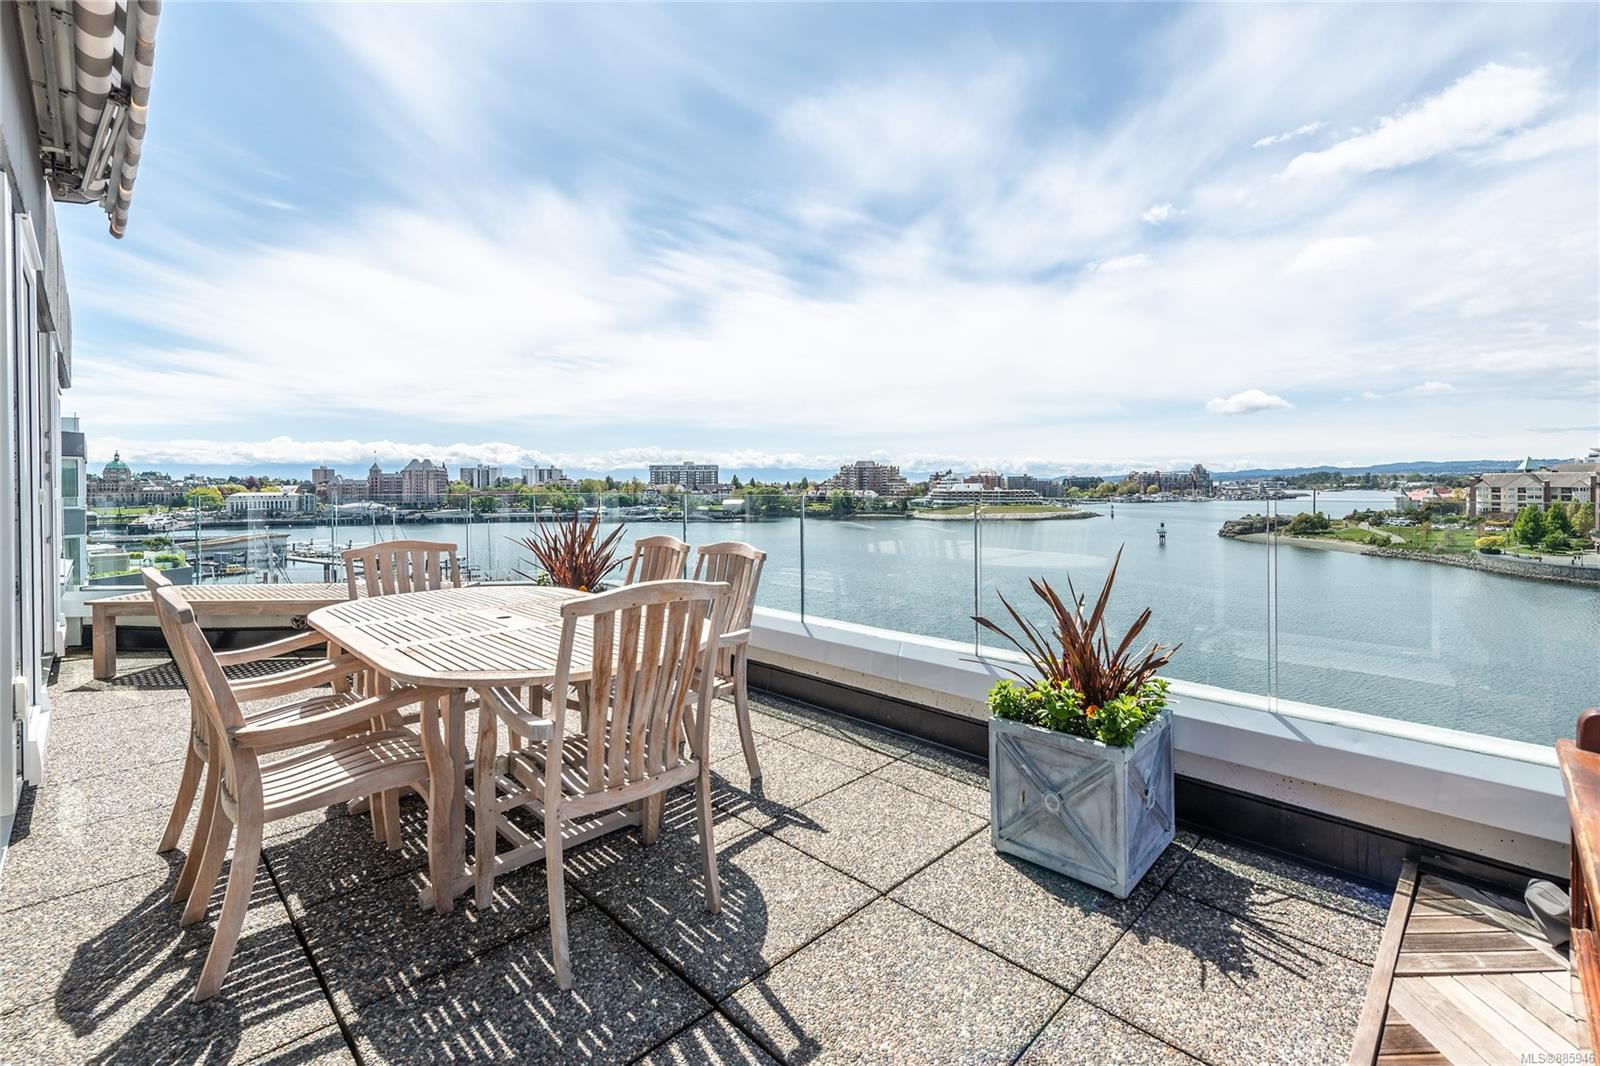 703 1234 Wharf St - Vi Downtown Condo Apartment for sale, 1 Bedroom (885946) #4